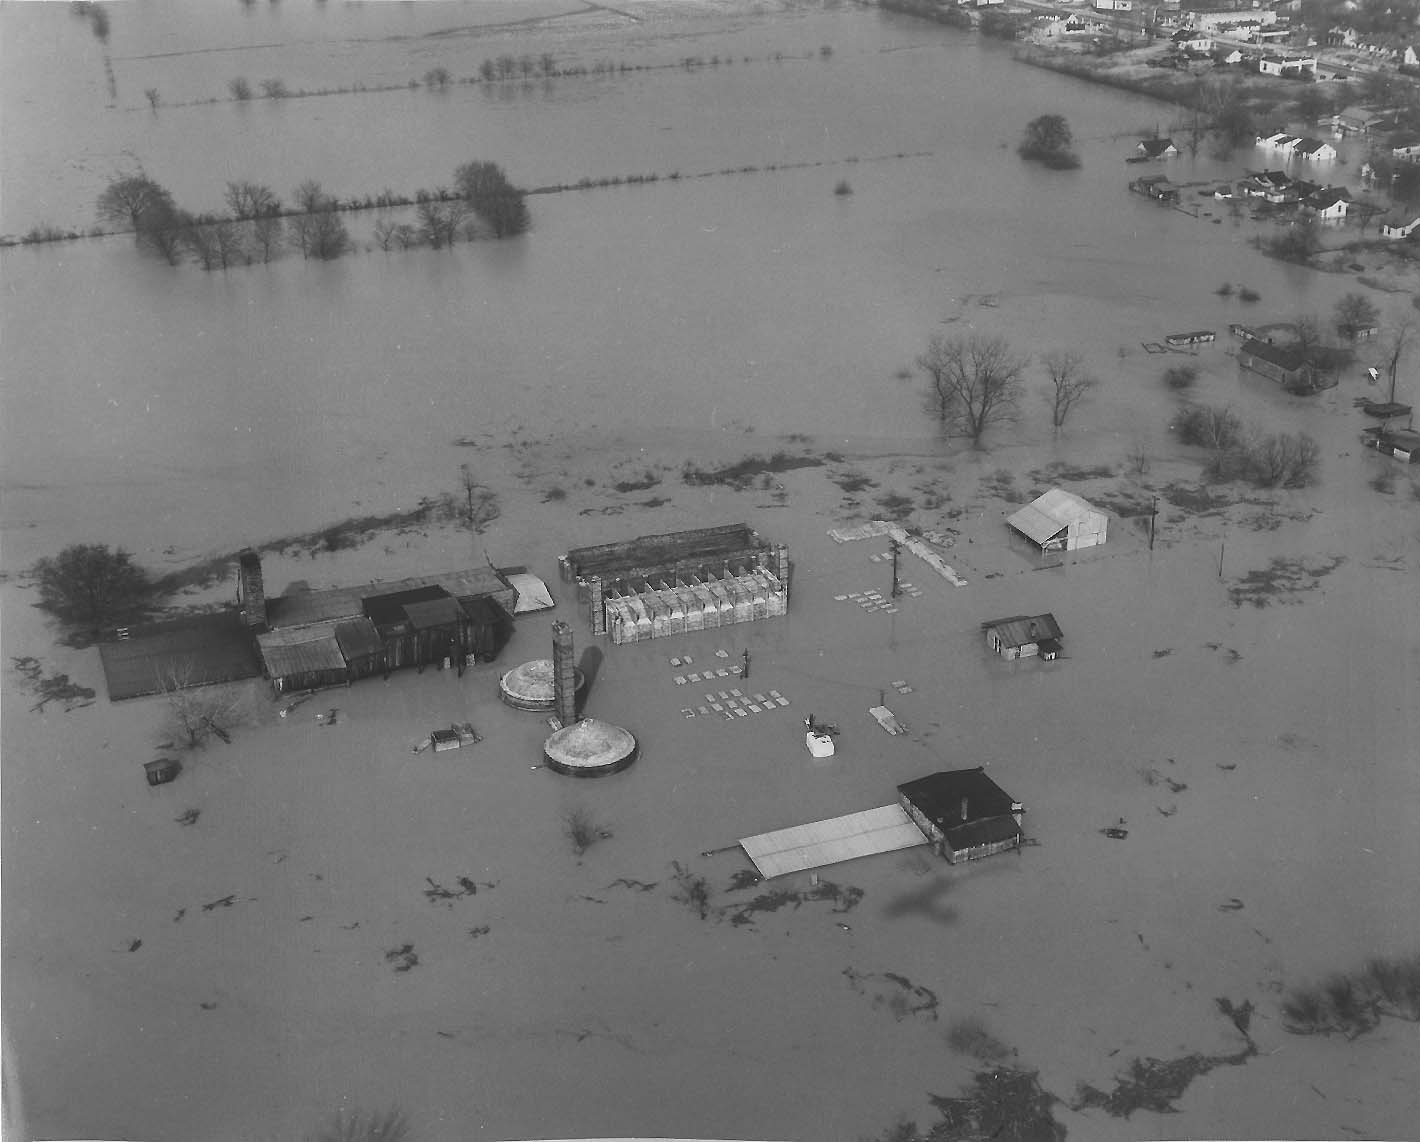 the kentucky flood Total flood deaths across the us between 1996 and 2017: 1,886 even though kentucky accounts for only a little over 1% of the us population, flood deaths between 1996 and 2017 in the state accounted for over 4% of the total flood deaths that occurred across the united states.